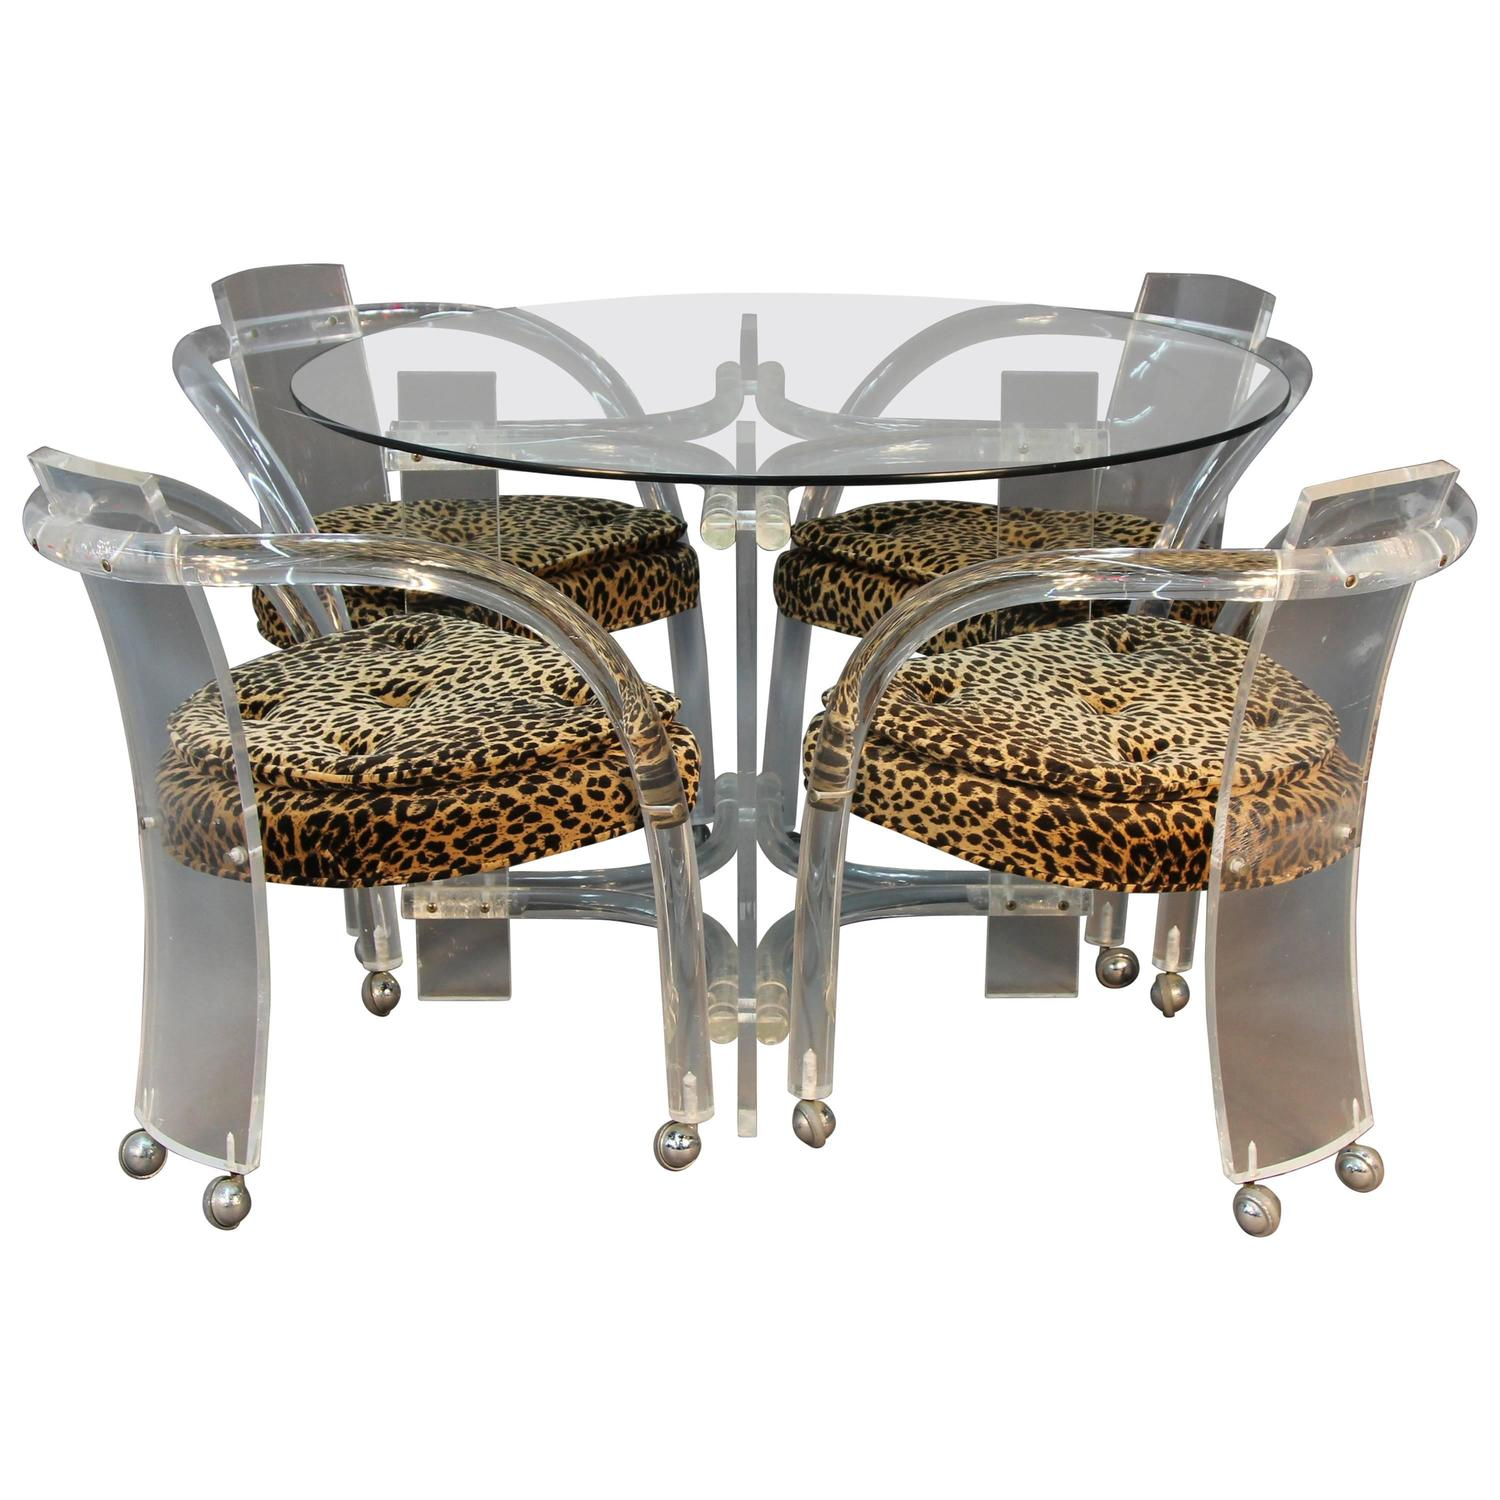 Animal Print Dining Chairs Lucite Table And Four Chair Set With Leopard Print Seats